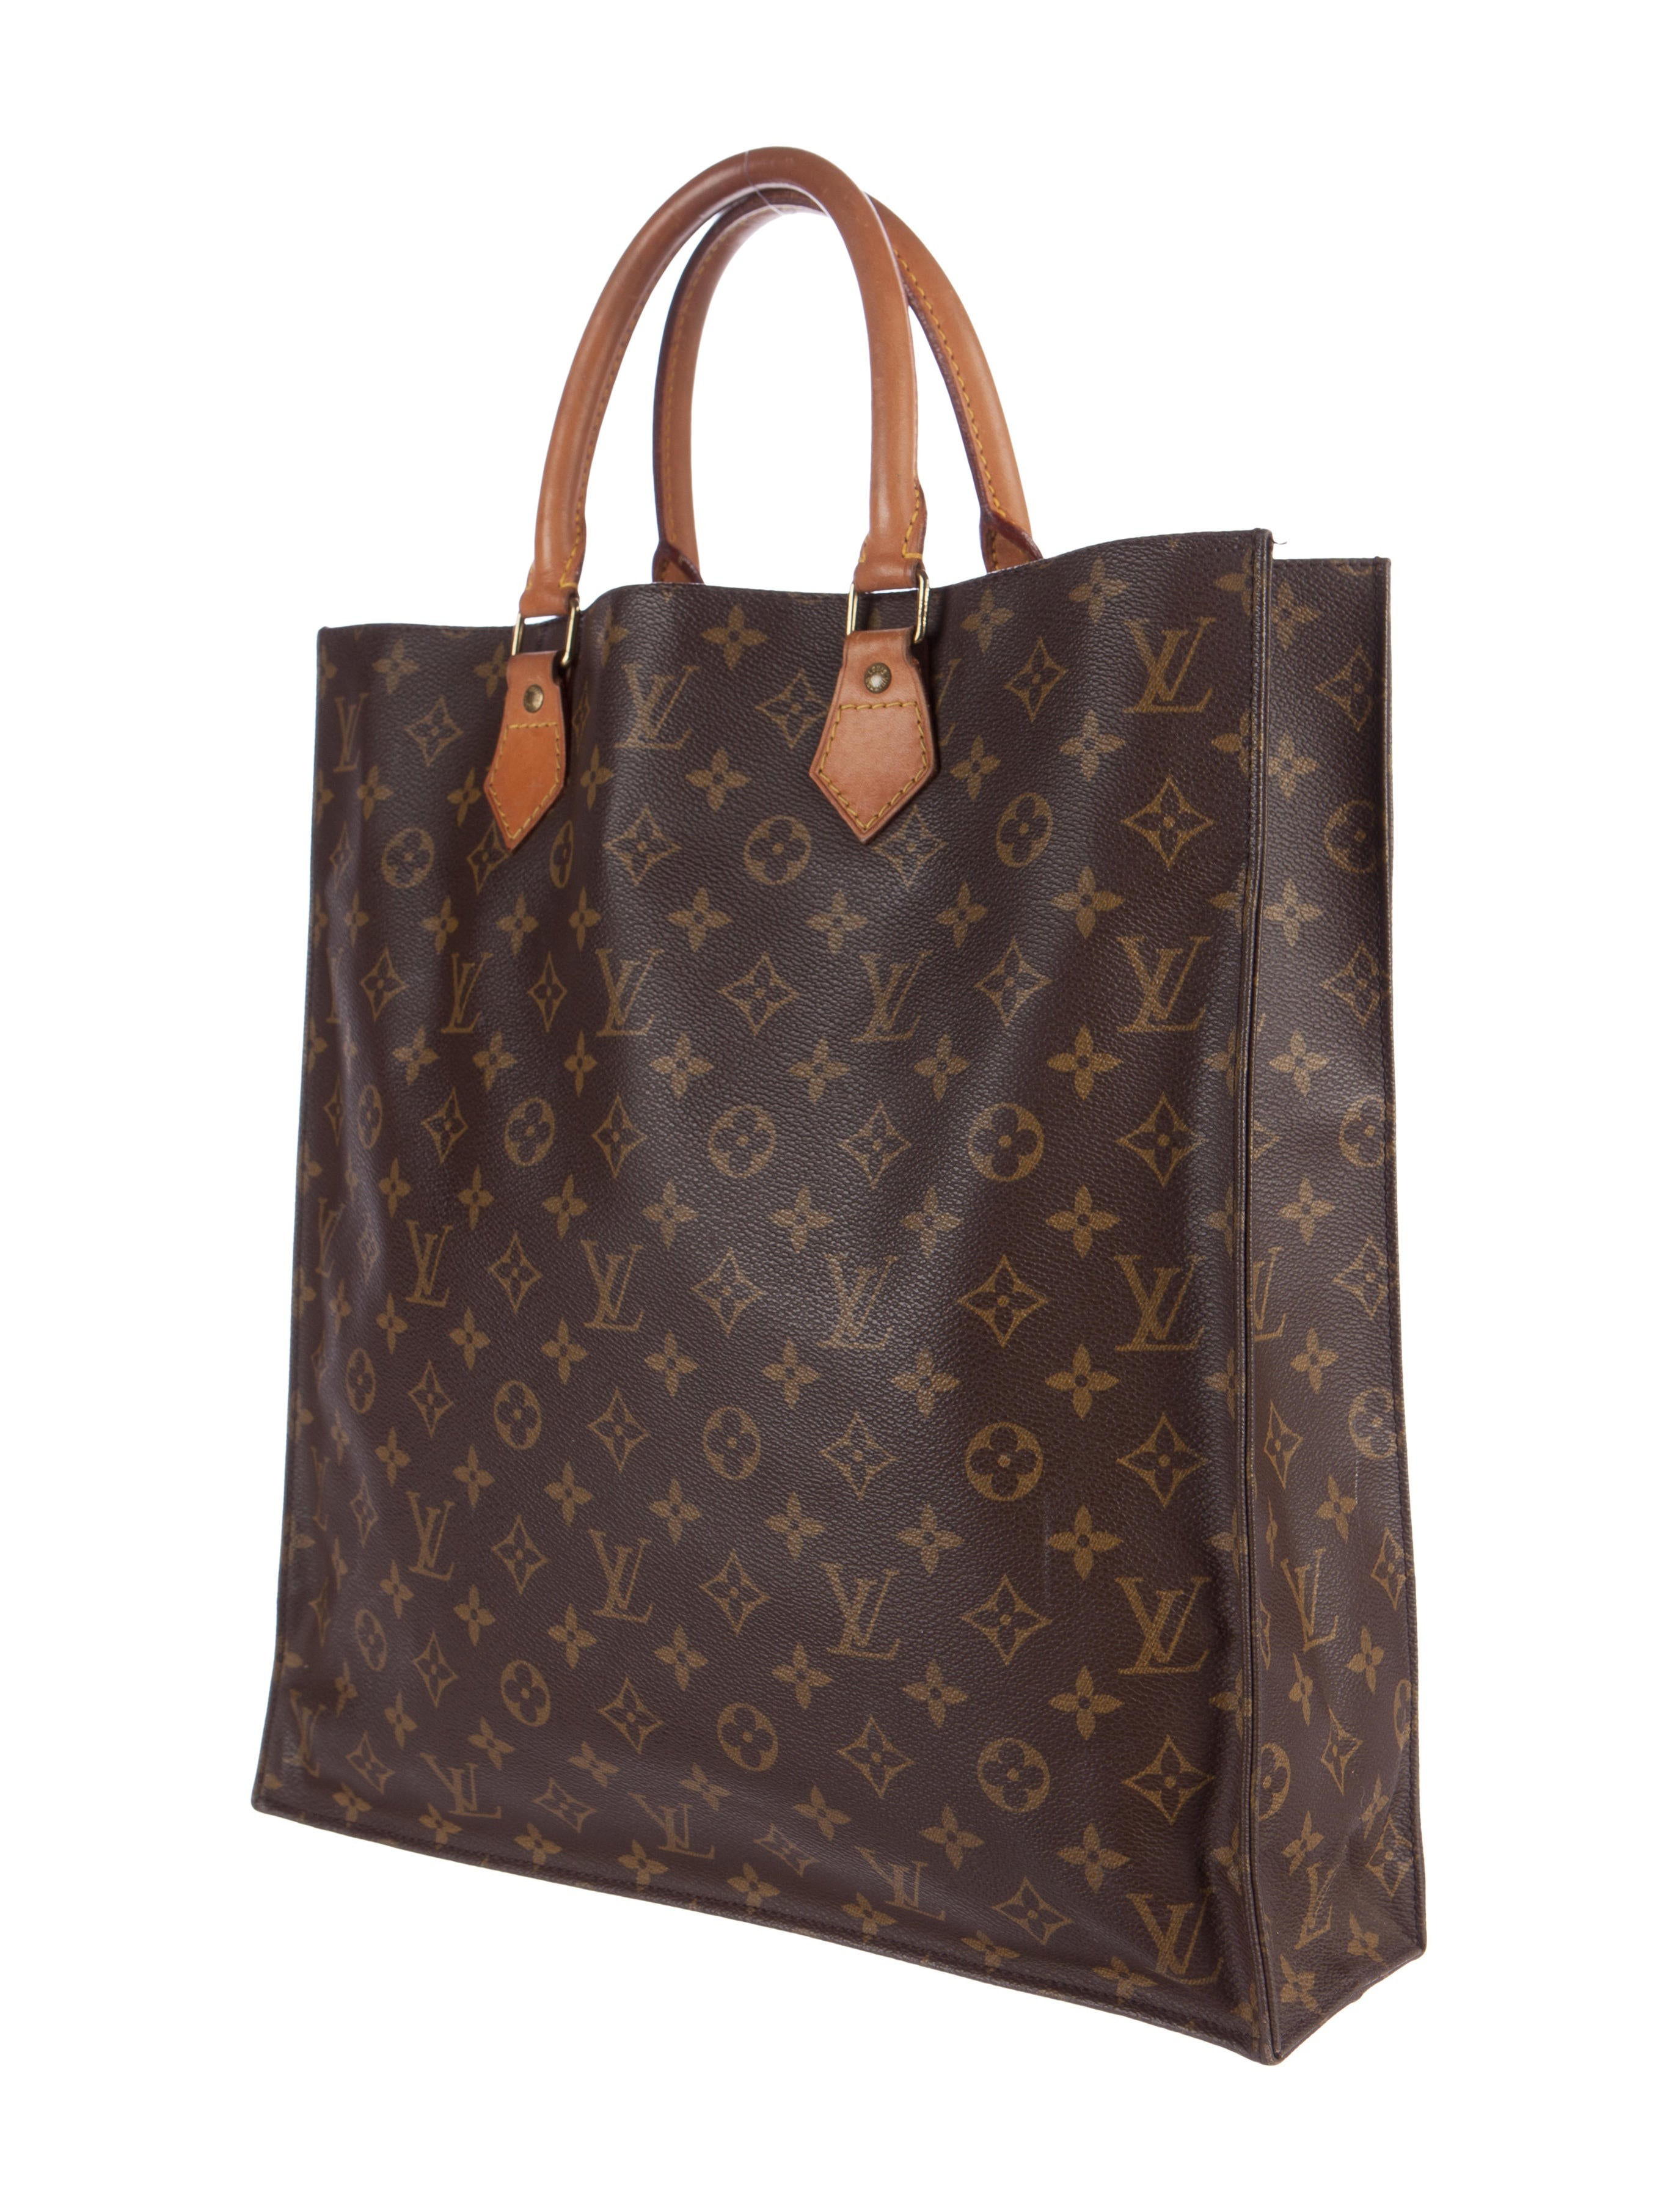 Louis vuitton monogram sac plat handbags lou116860 for Louis vuitton monogram miroir sac plat